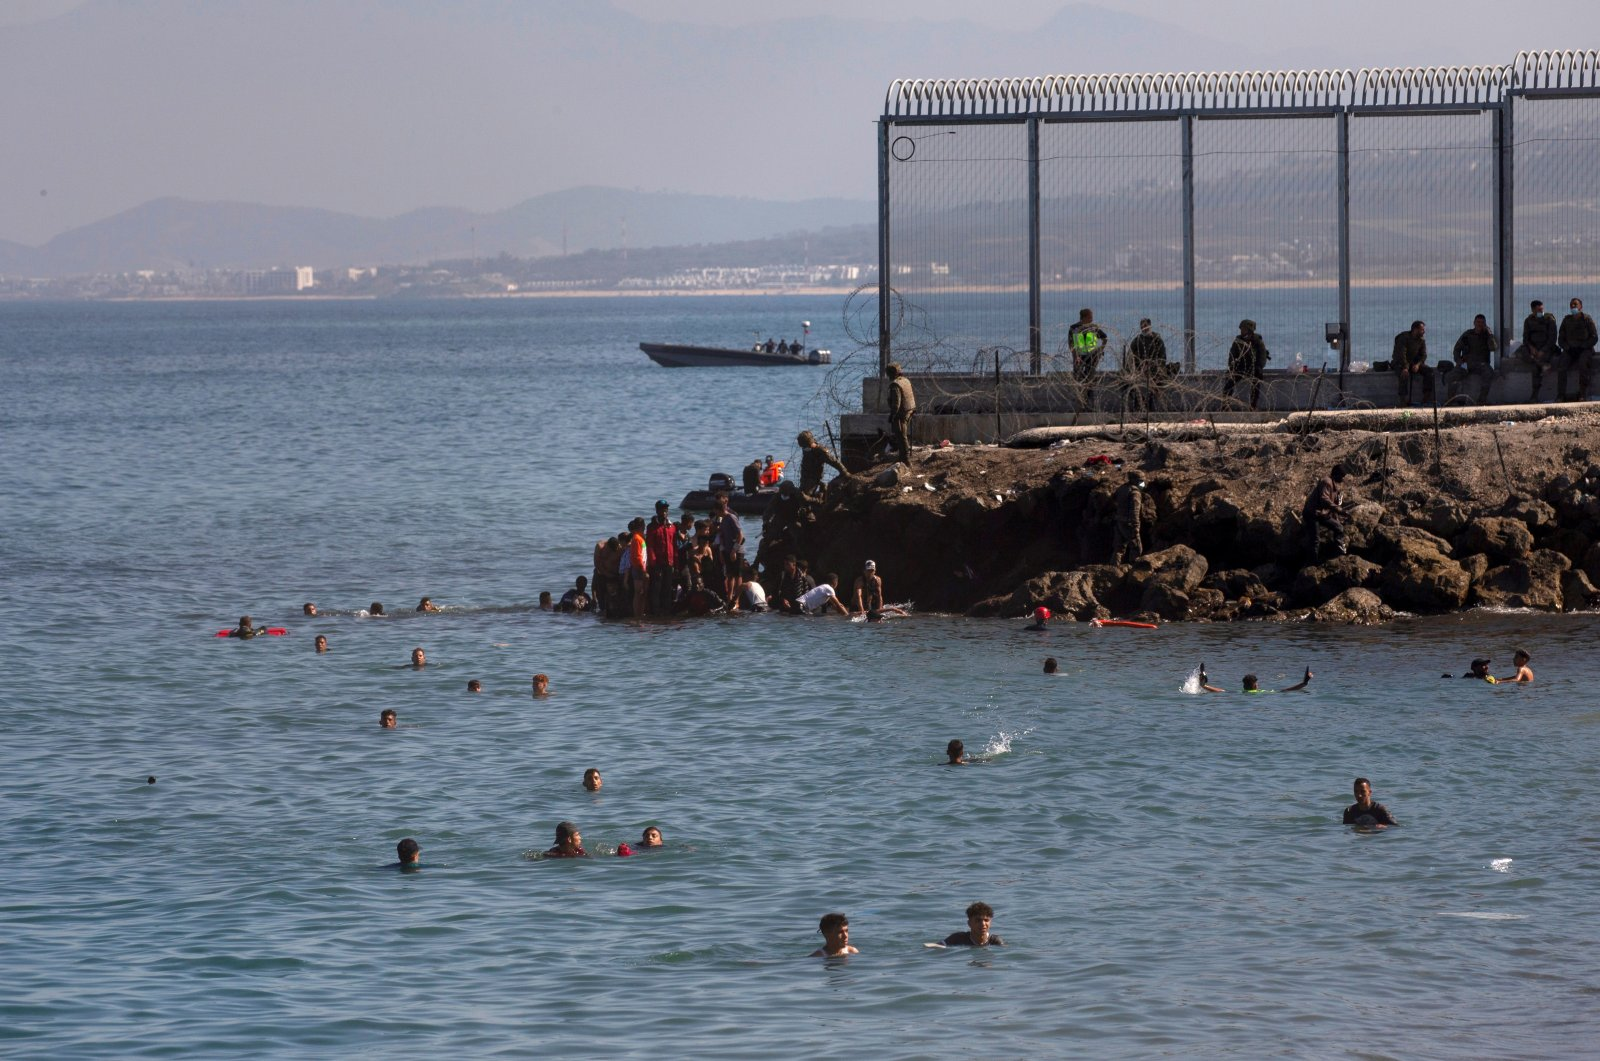 Migrants swim to cross the border of Tarajal in Ceuta, Spain. On the night of 18 May, a total of 5,000 Moroccan nationals entered the Spanish city of Ceuta, located on the North African coast, May 18, 2021. (EPA / BRAIS LORENZO)